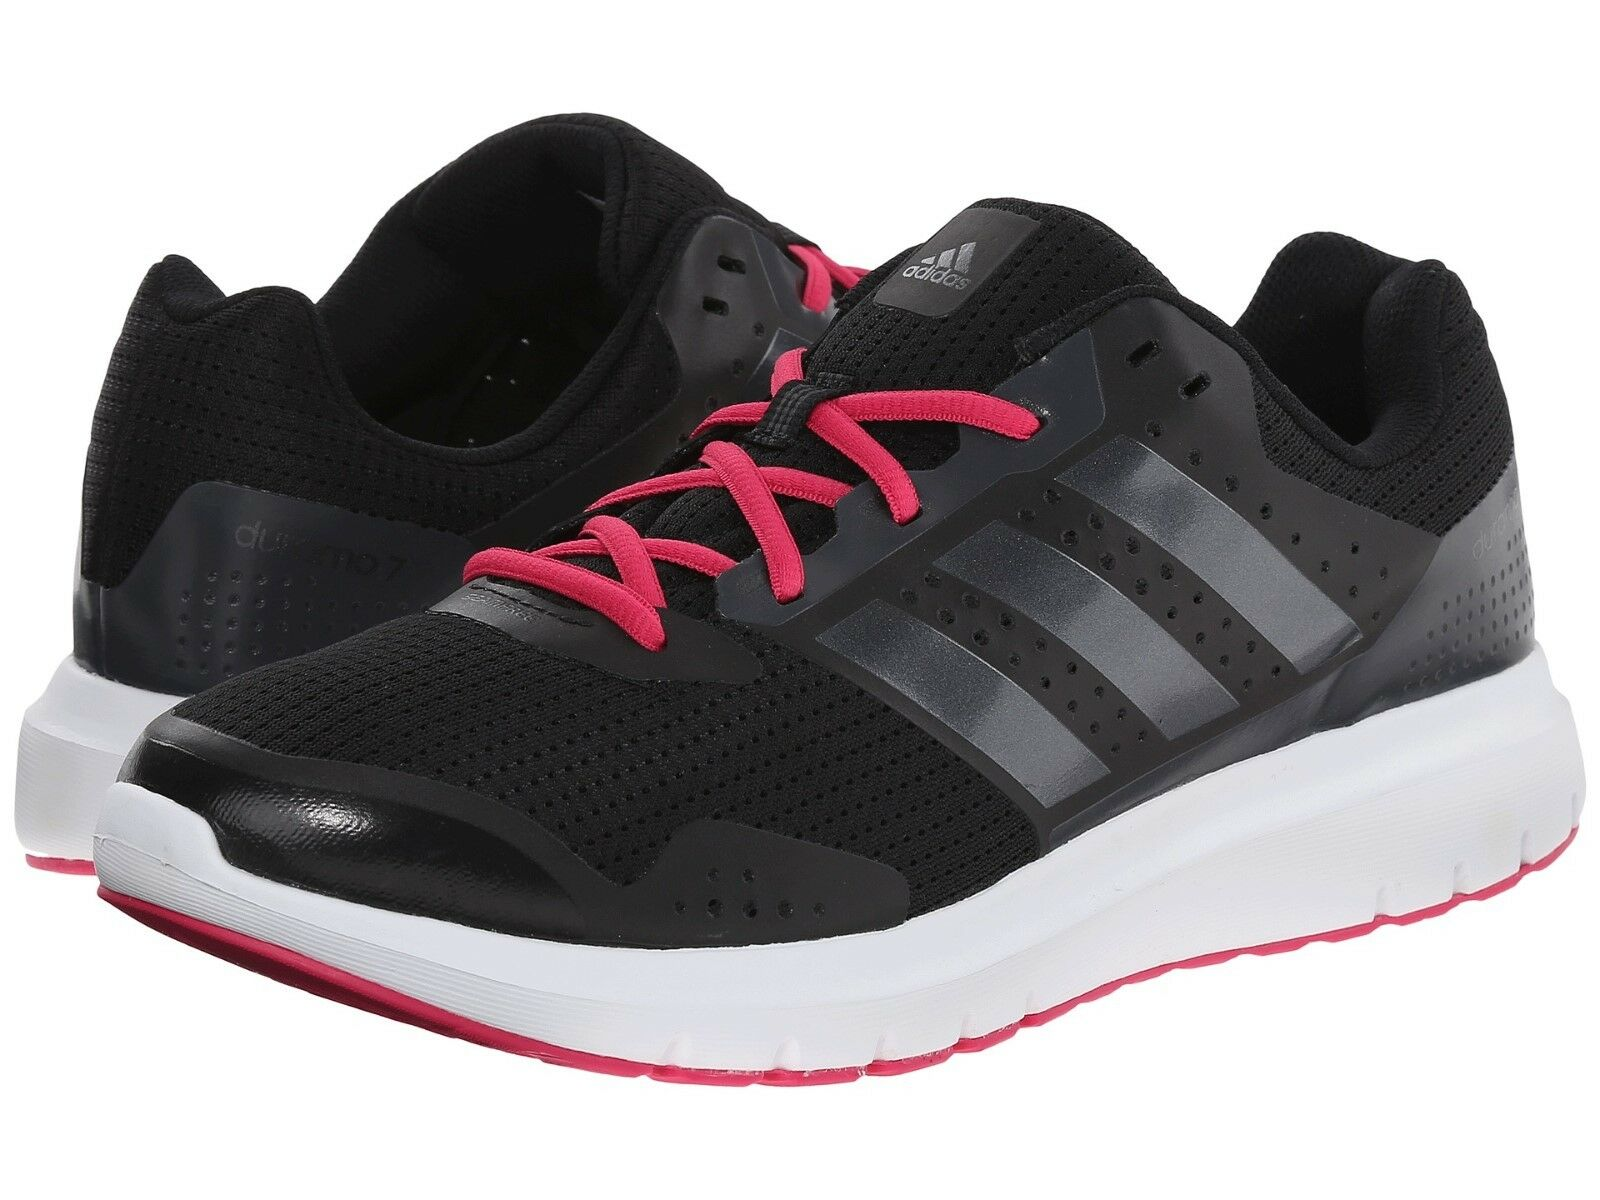 Adidas Duramo 7 Femmes Chaussures De Course Taille  UK 4-New Boxed